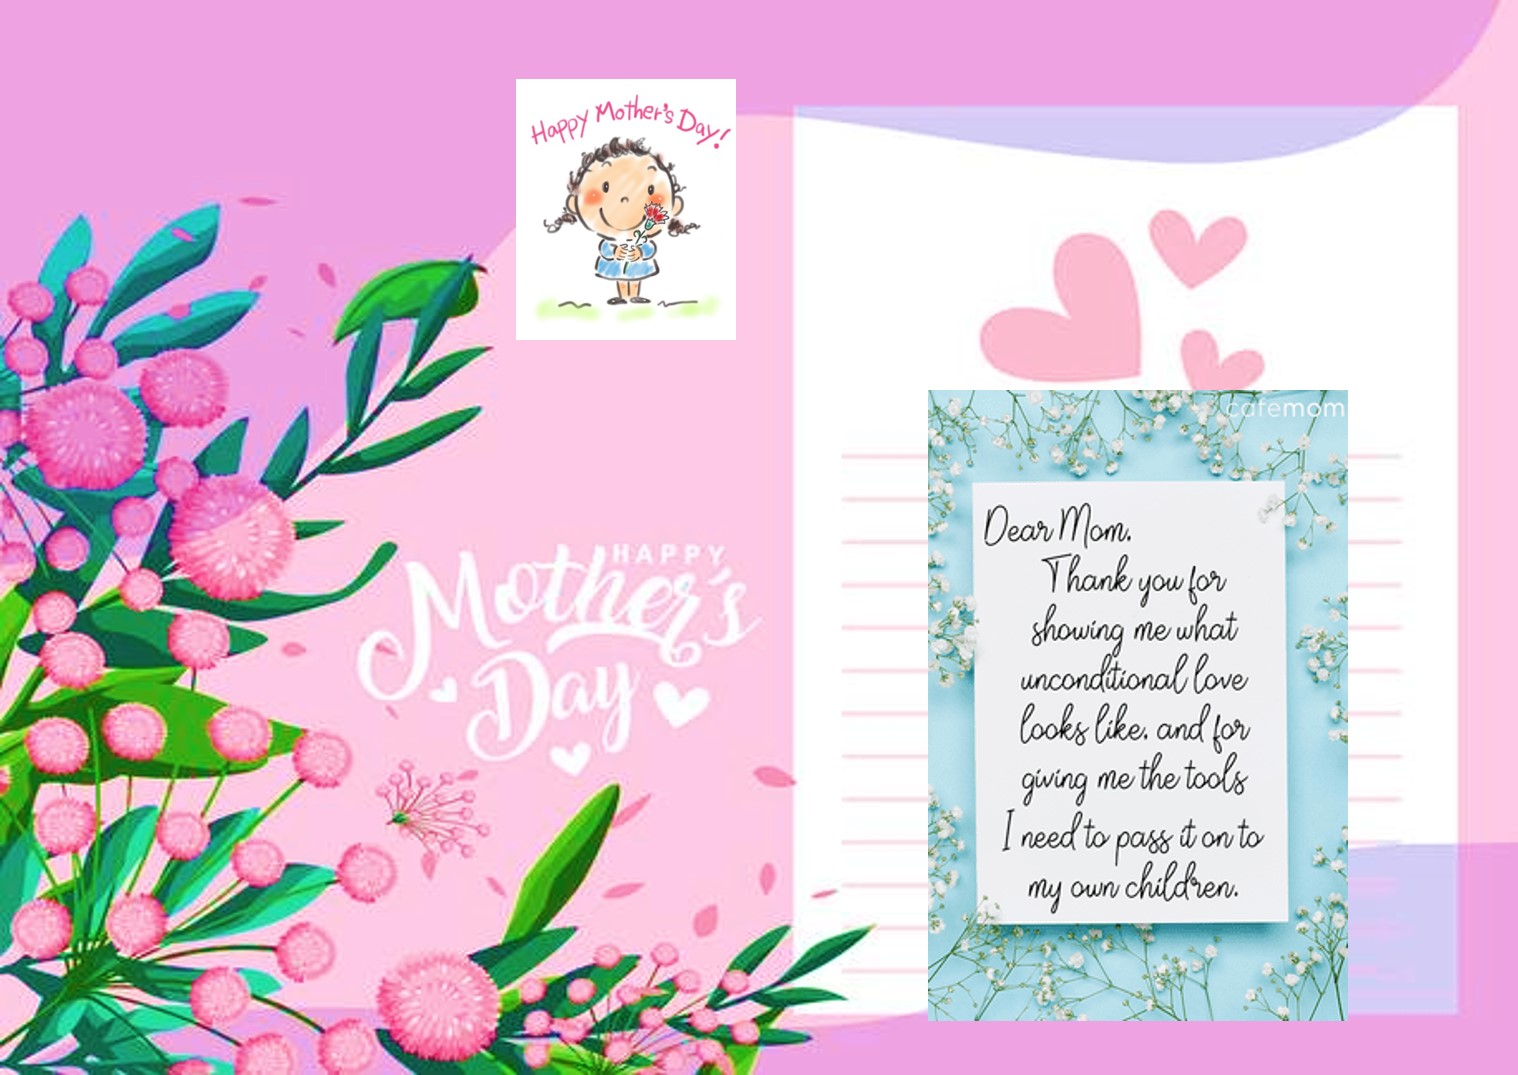 Note for mother